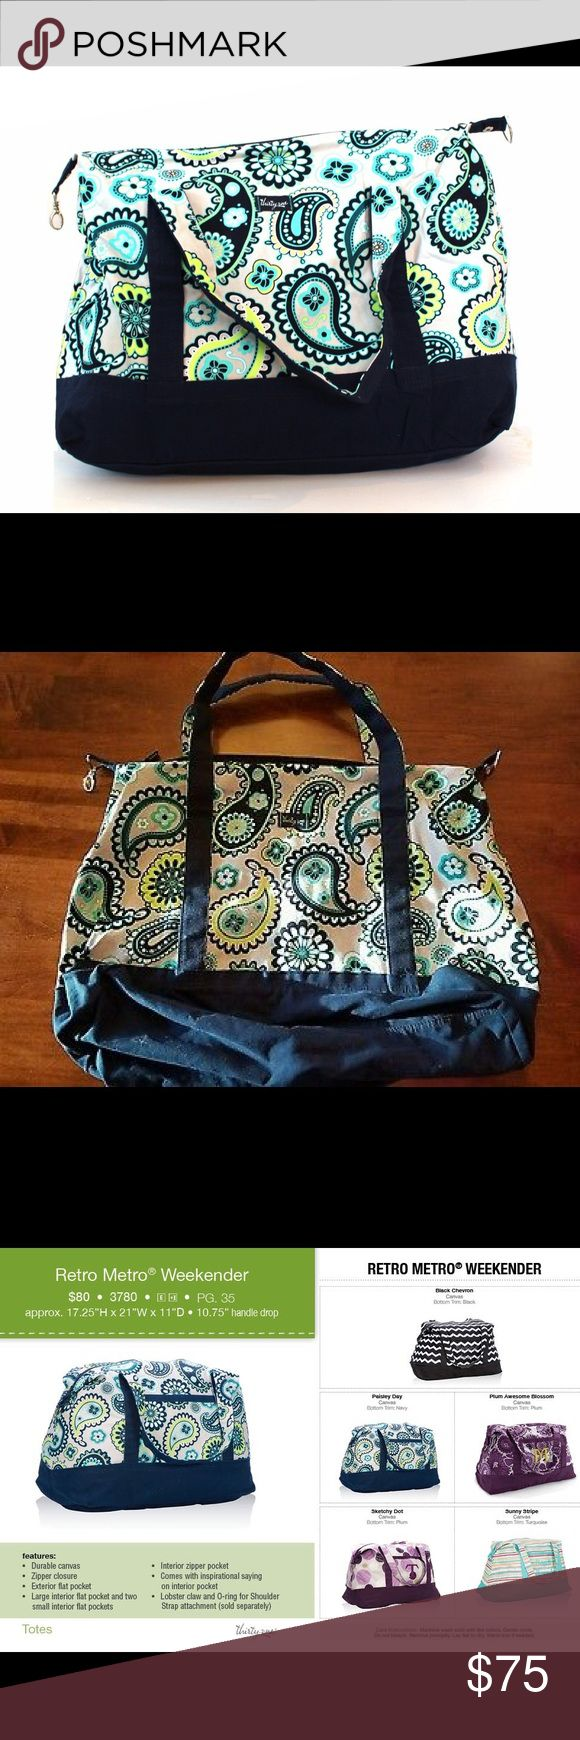 Thirty-One Retro Metro Weekender in Paisley Day Thirty-One Retro Metro Weekender in Paisley Day Thirty-One Bags Travel Bags